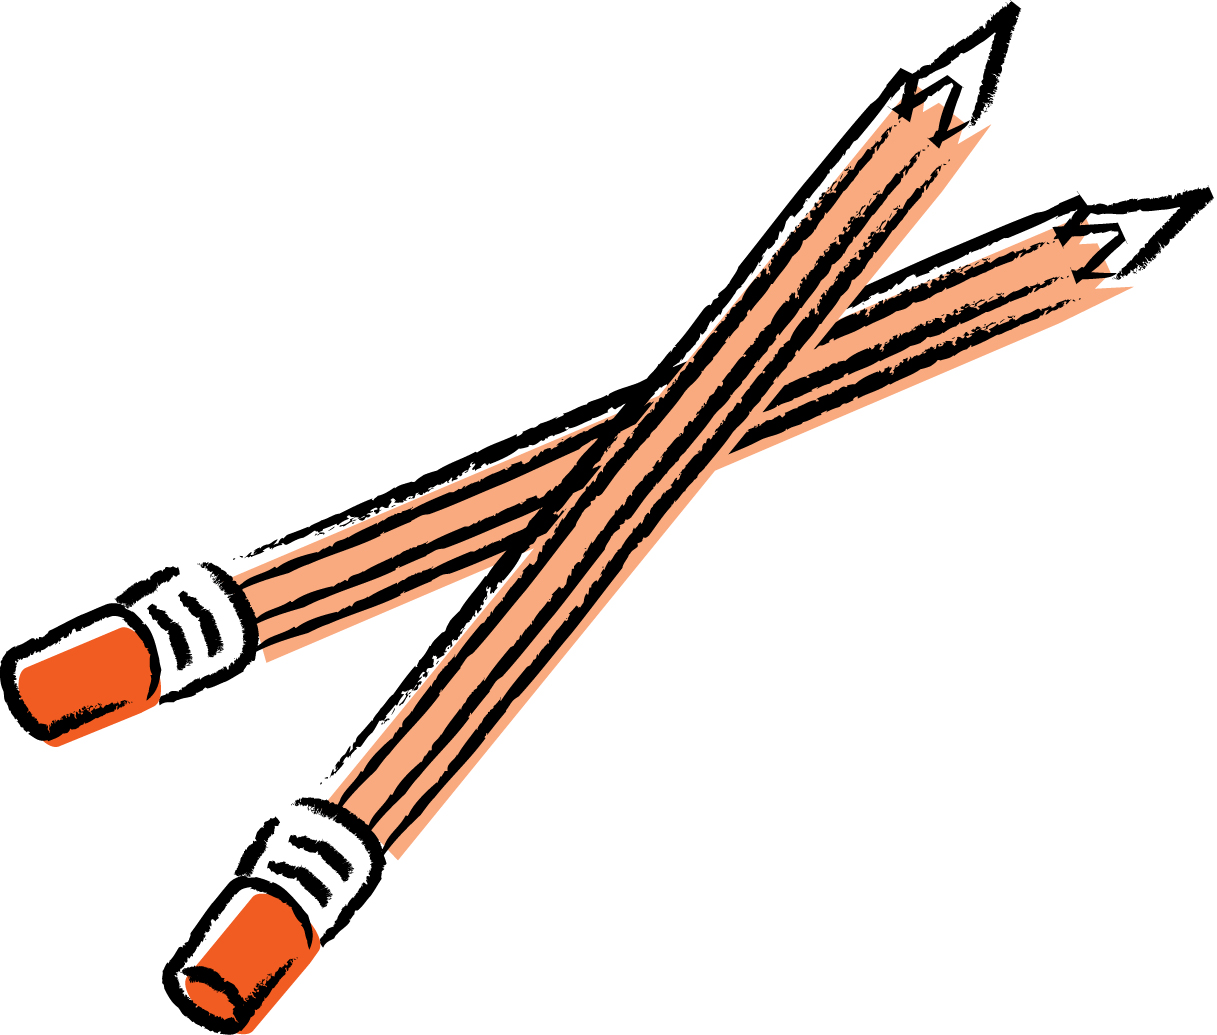 Free Picture Of A Pencil, Download Free Clip Art, Free Clip.